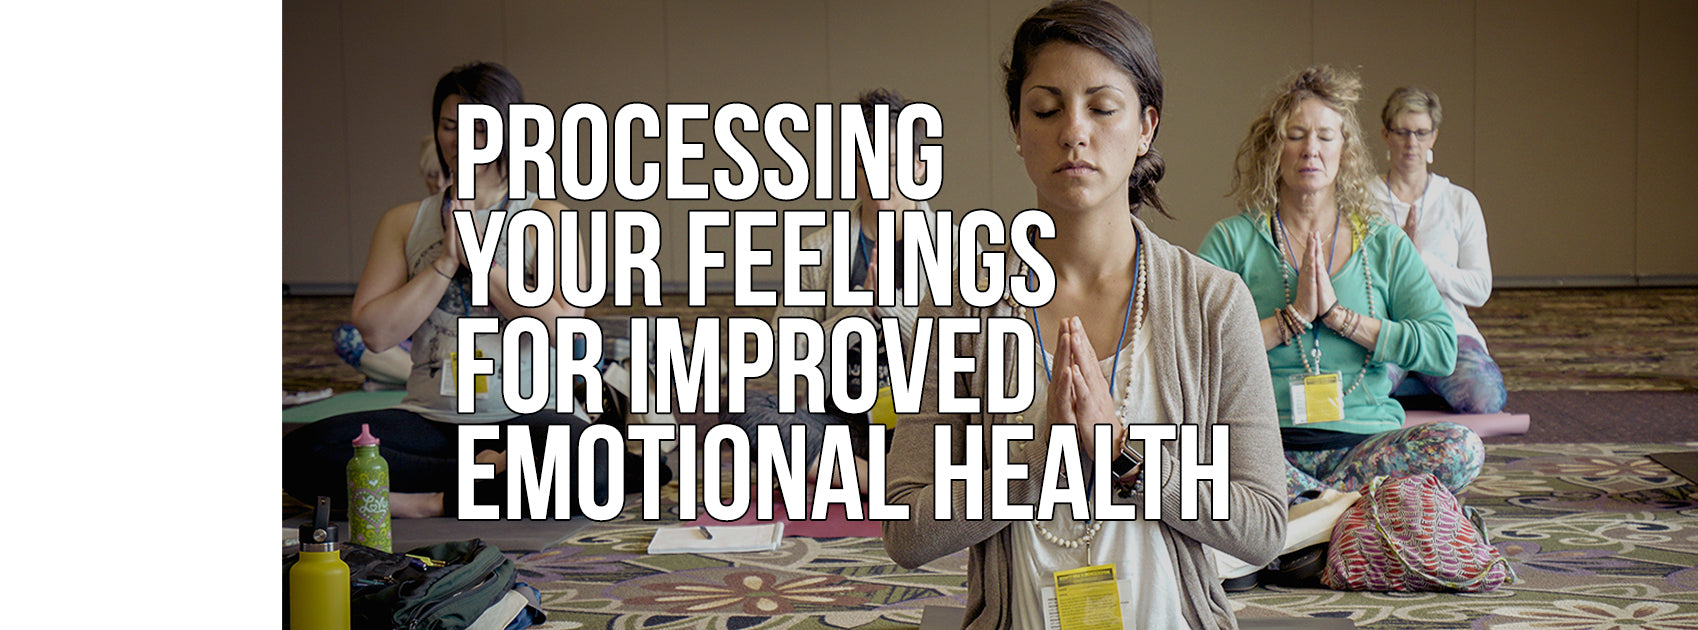 Processing Your Feelings for Improved Emotional Health